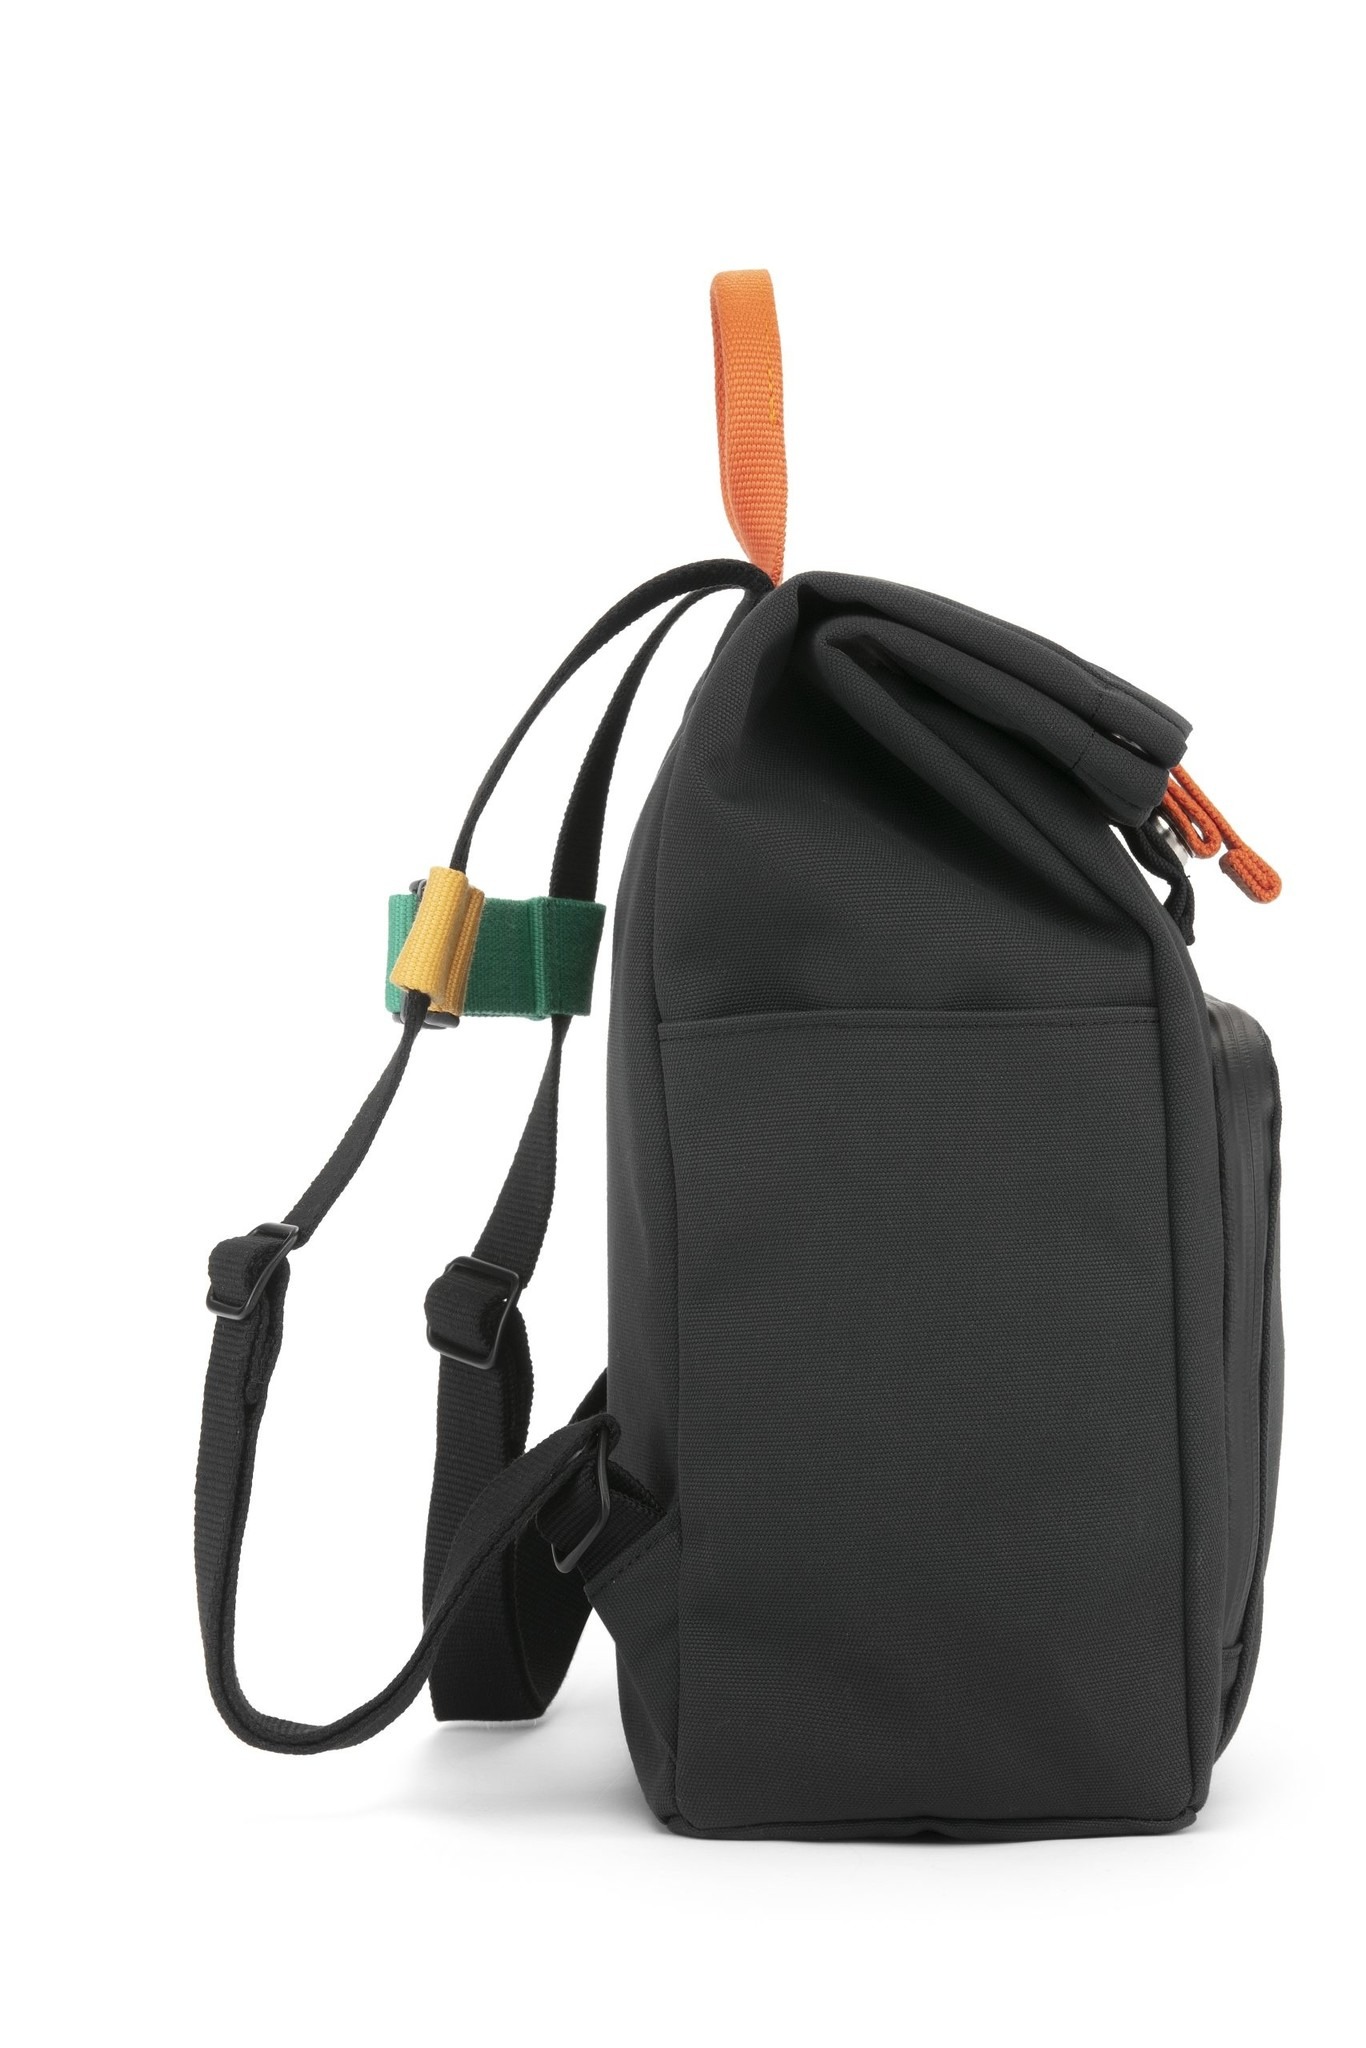 Mini Bag - Night Black / Fresh Orange-5